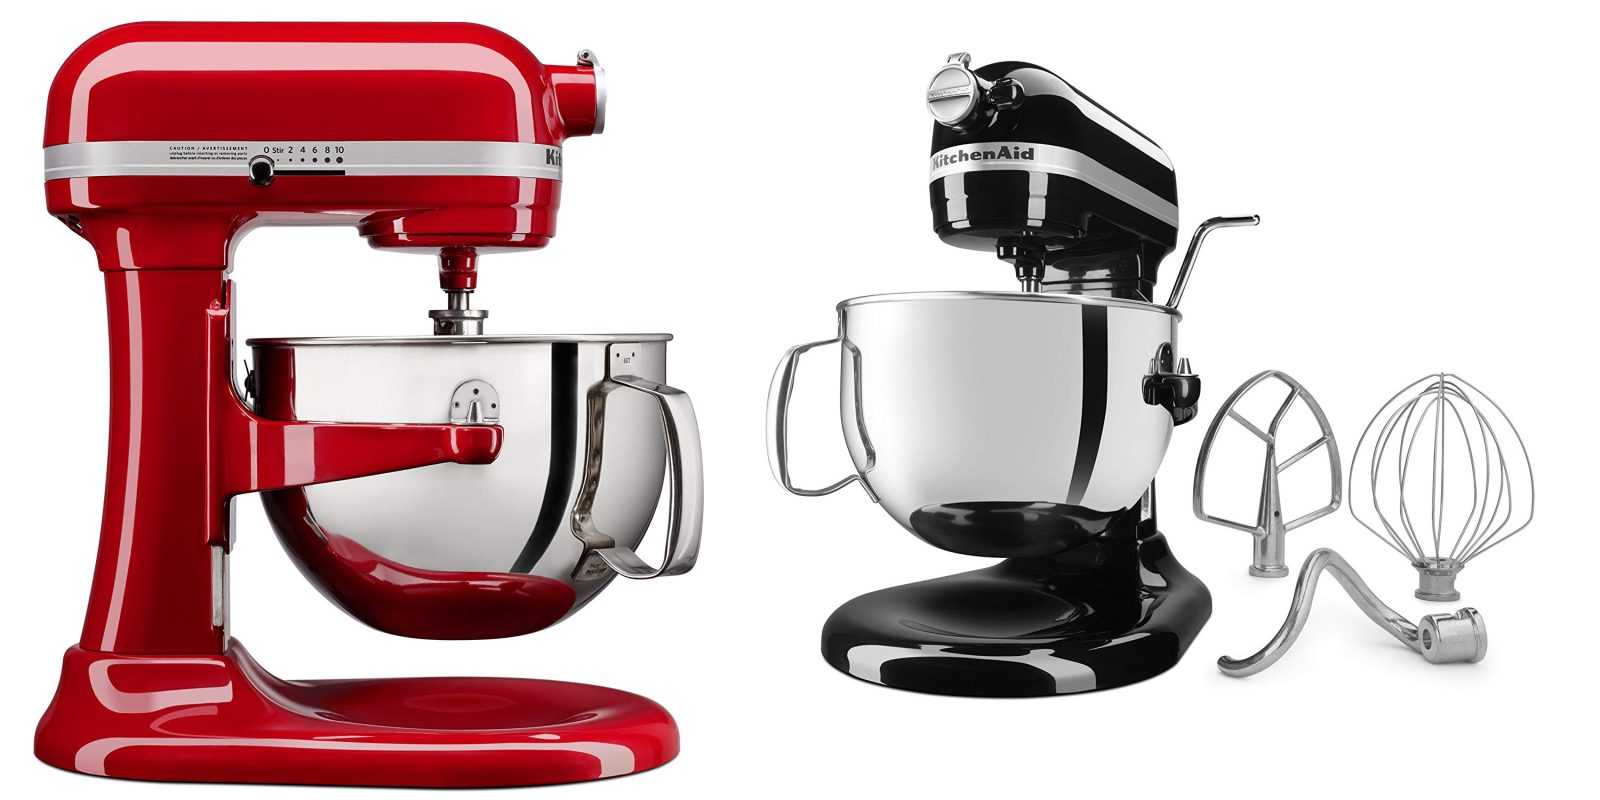 Kitchenaid S 6 Qt Bowl Lift Stand Mixer Down To 219 For Today Only Reg 440